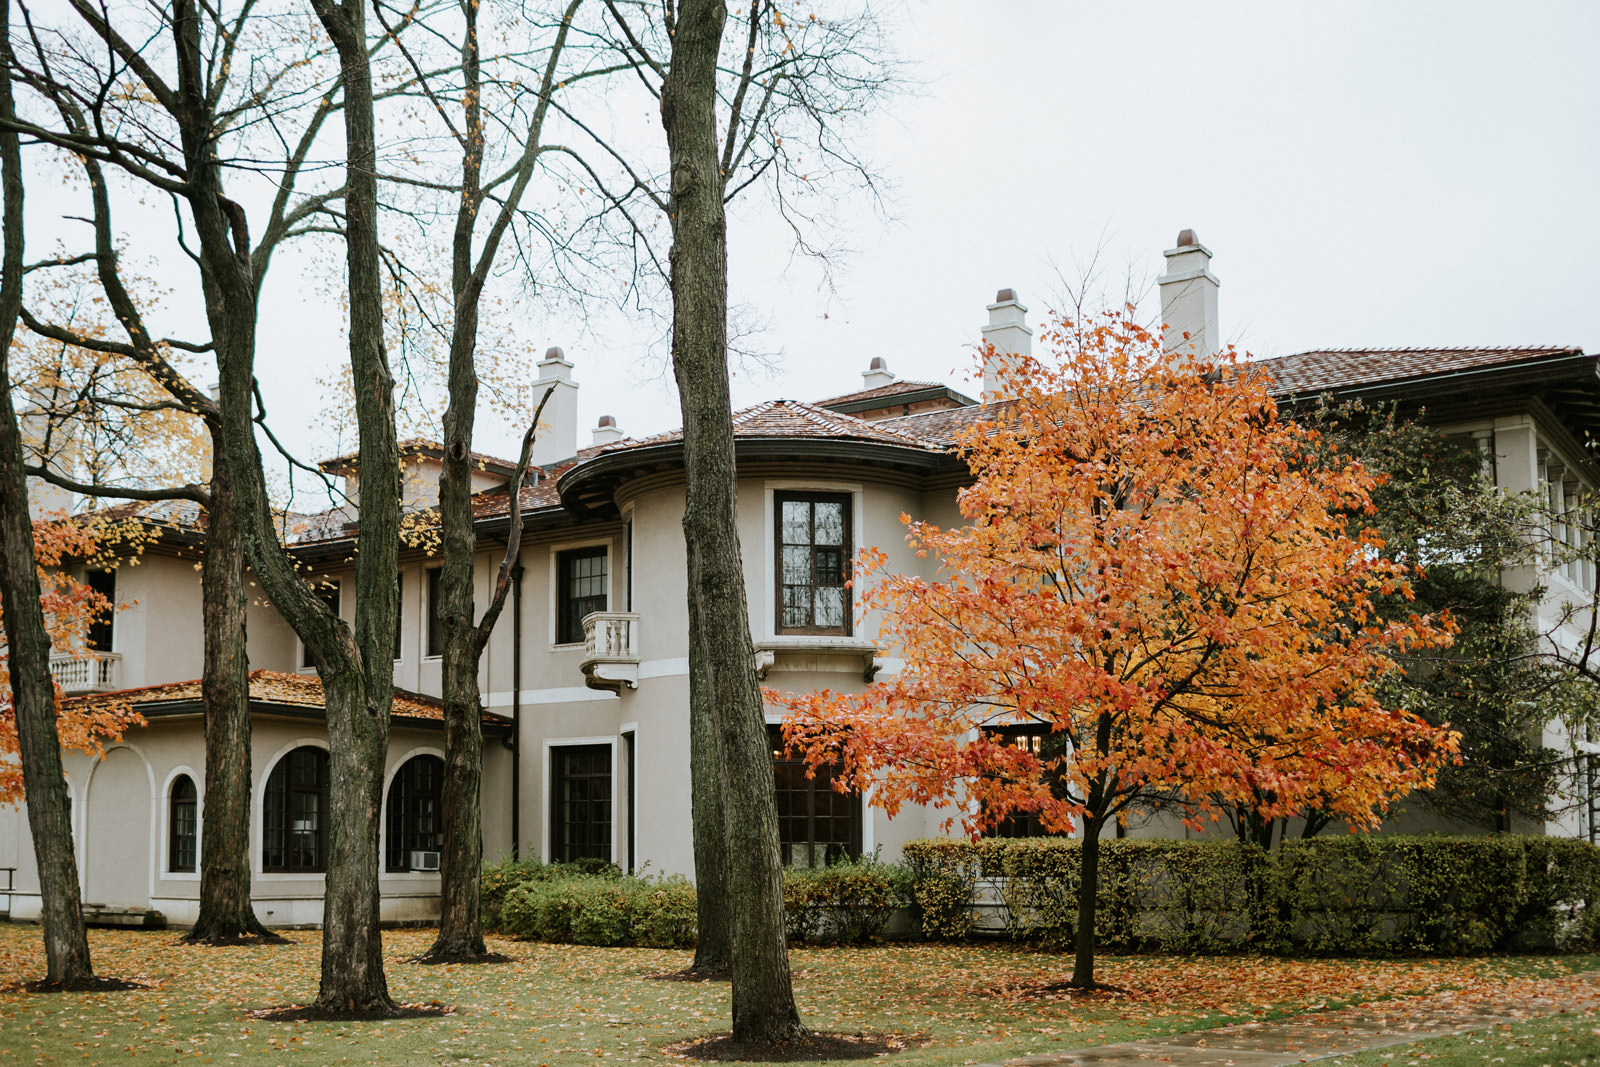 Picture of Armour House in the October for the fall Wedding.